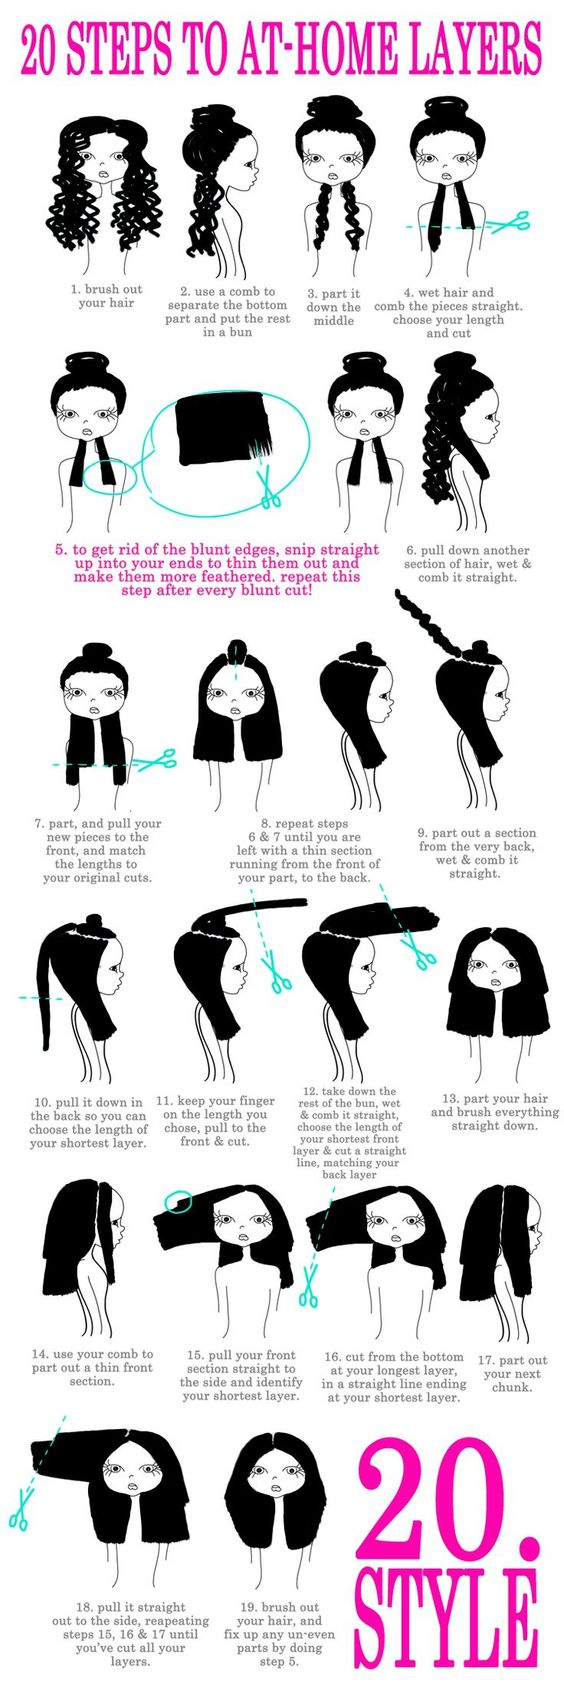 How To Cut Your Hair Or Others Personal Care Forum At Permies